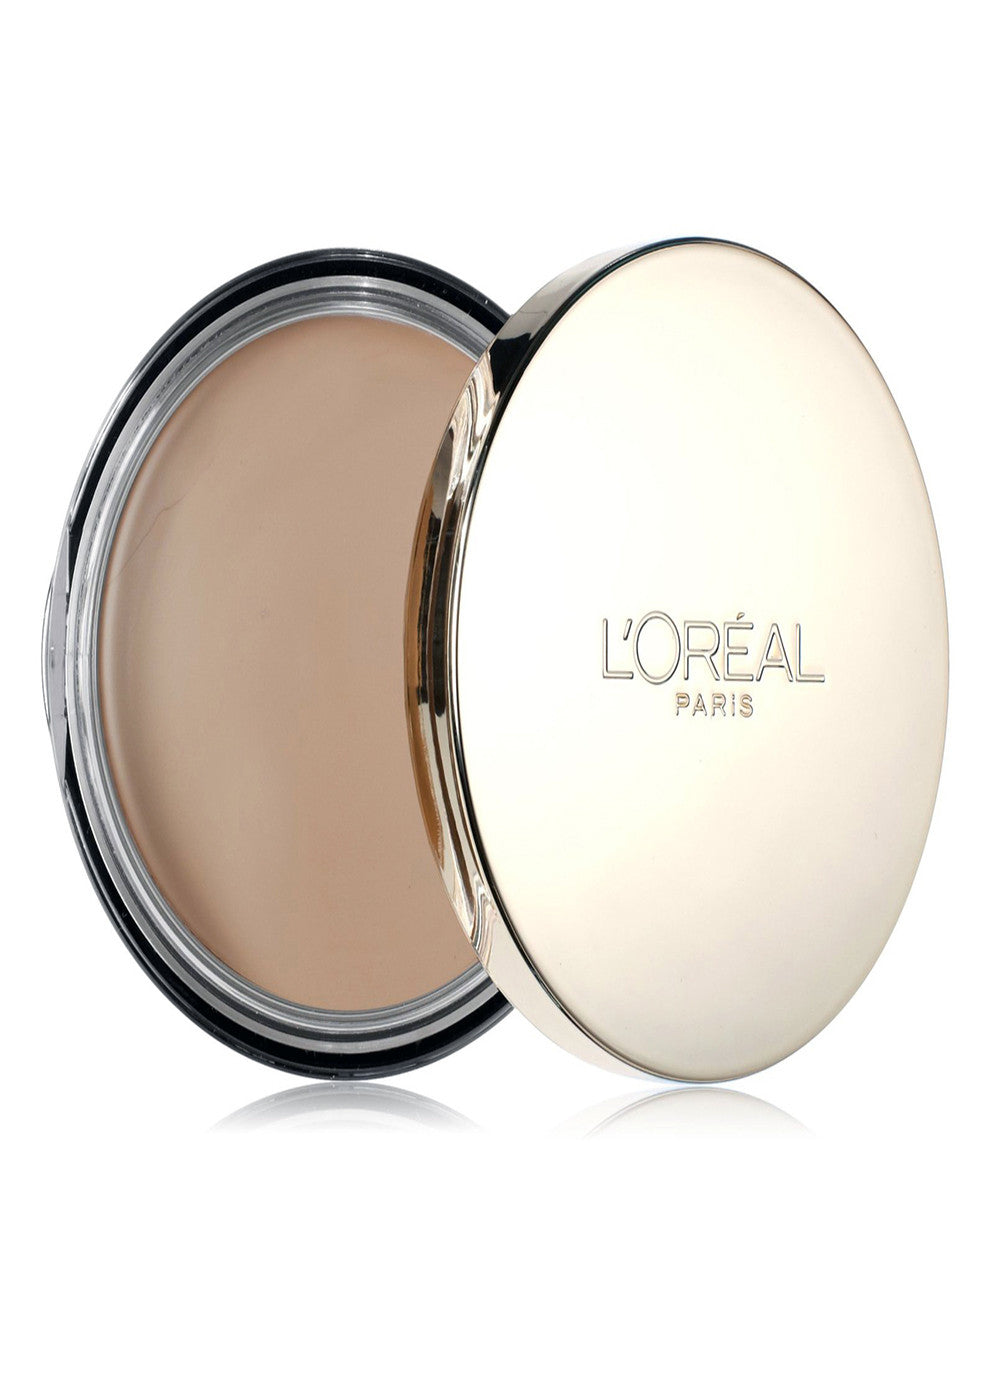 L'Oreal Visible Lift Repair Absolute Rapid Age Reversing SPF 16 Makeup #135 Sand Beige